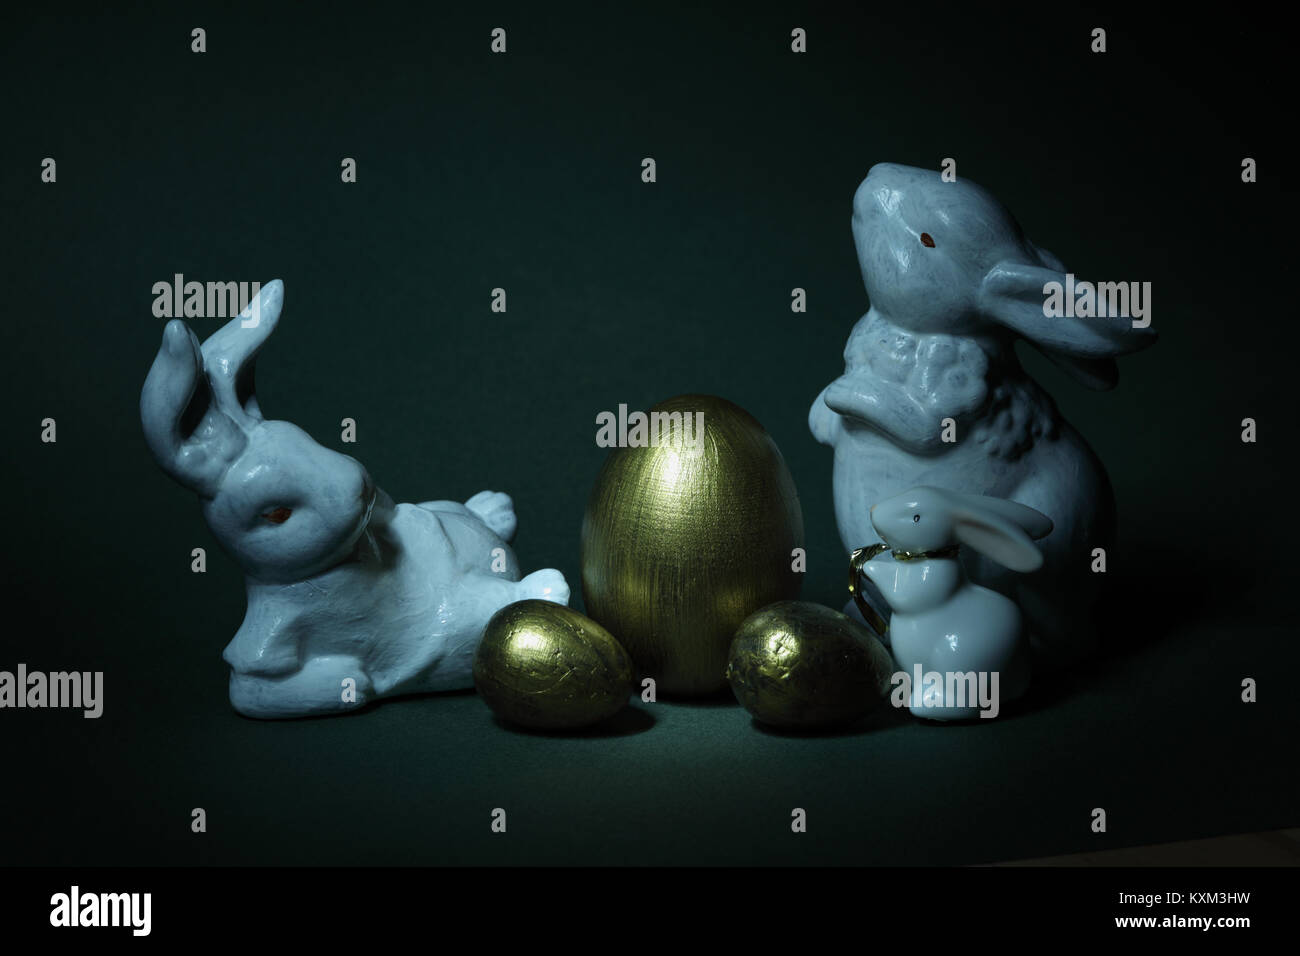 golden eggs and Family rabbits Creatively lit, against a black background - Stock Image